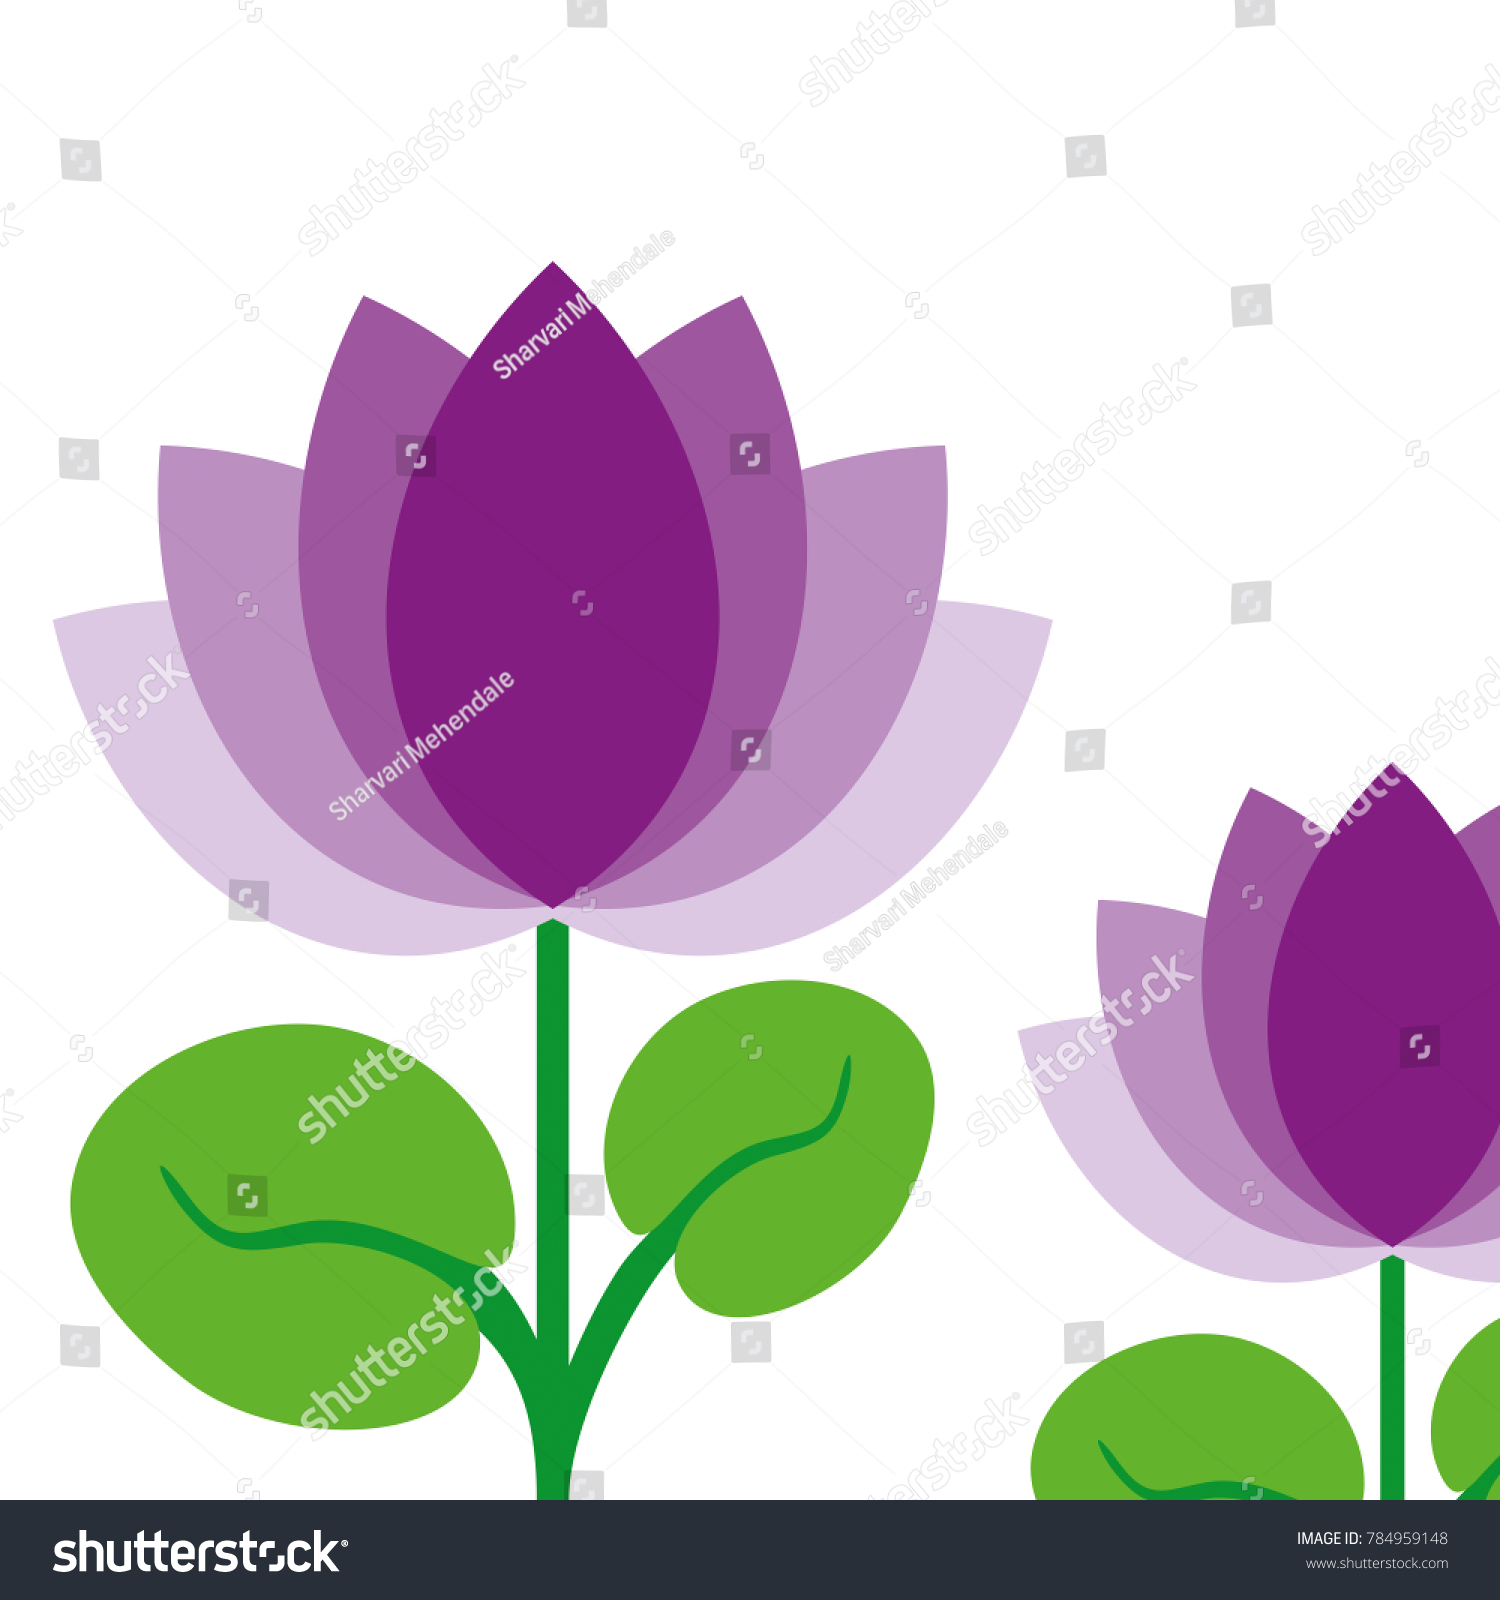 Lotus national flower india stock illustration royalty free stock lotus national flower of india izmirmasajfo